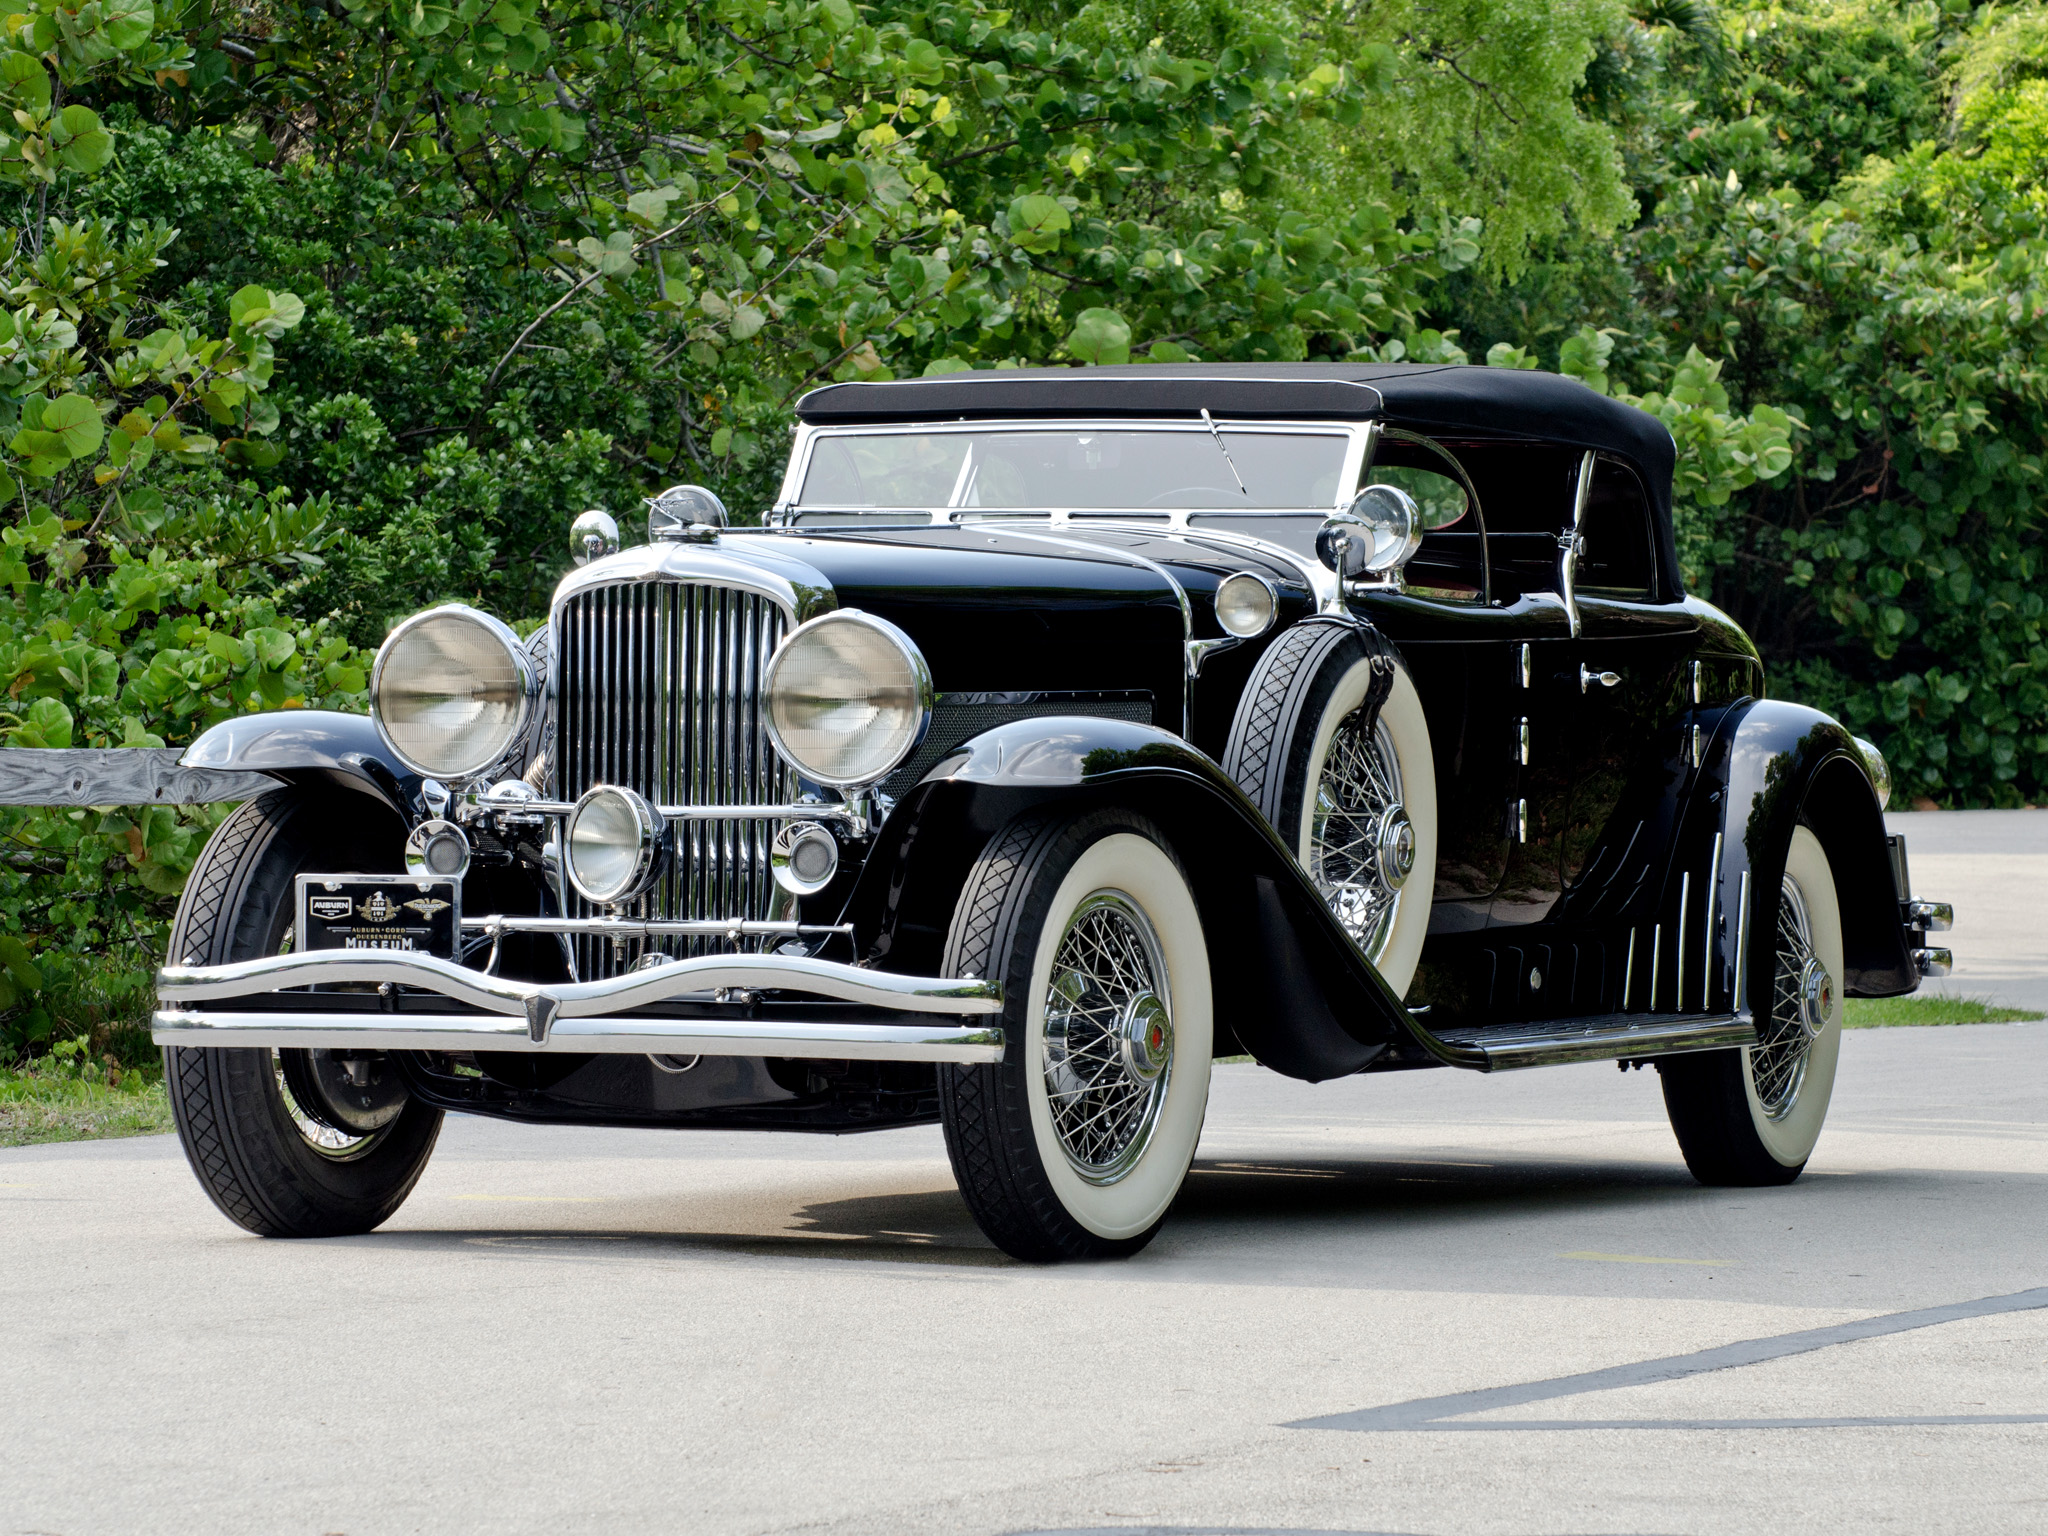 duesenberg vintage car wallpapers - photo #5